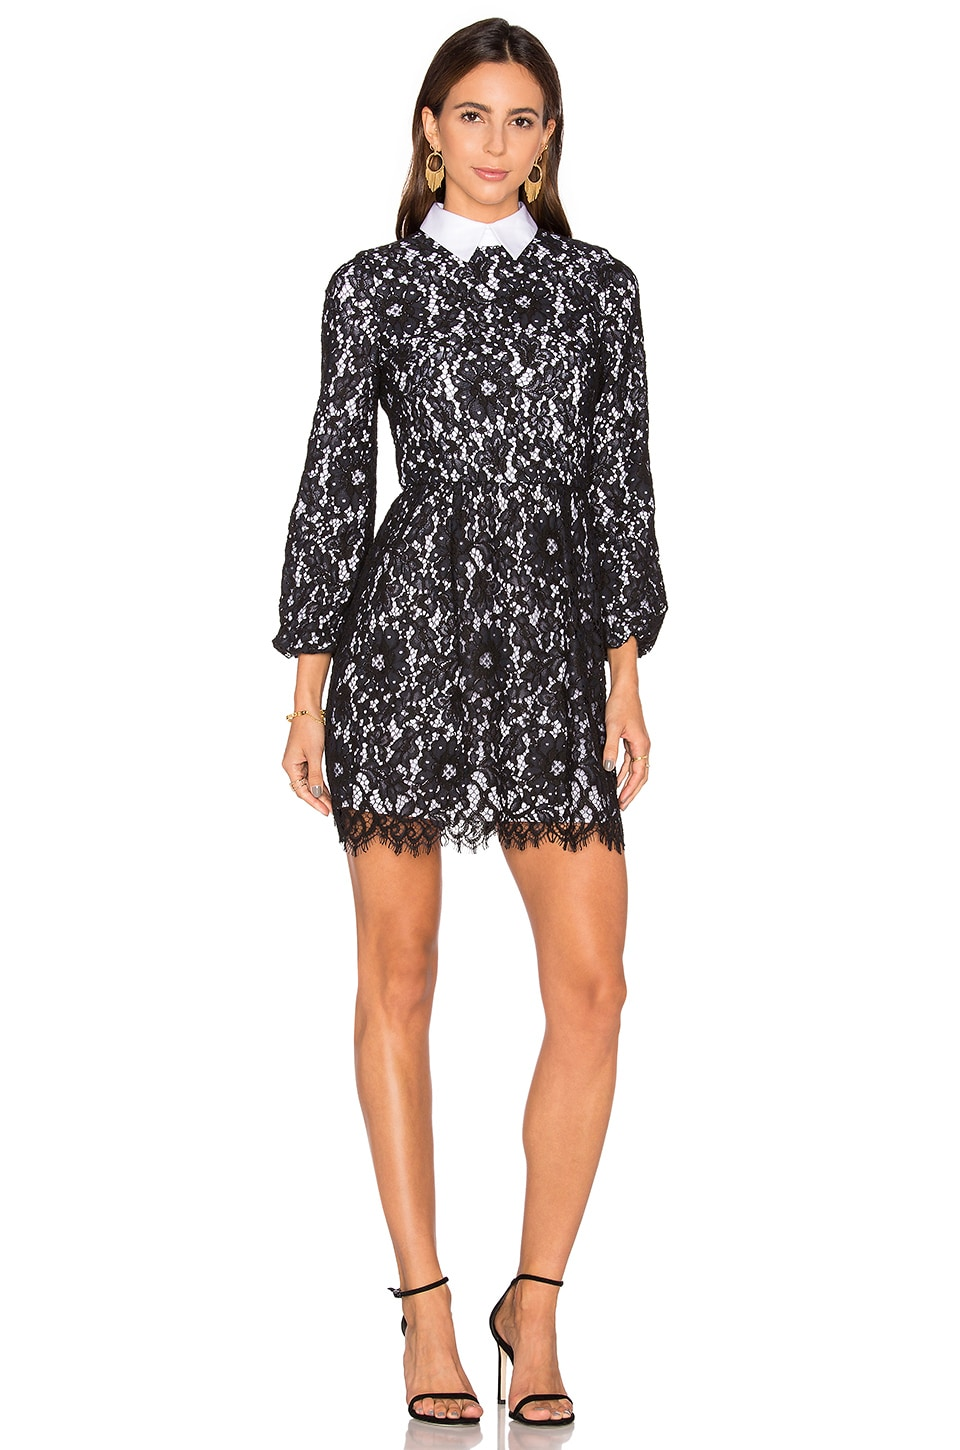 buy Terisa Fit & Flare Lace Dress by Alice + Olivia dresses online shopping